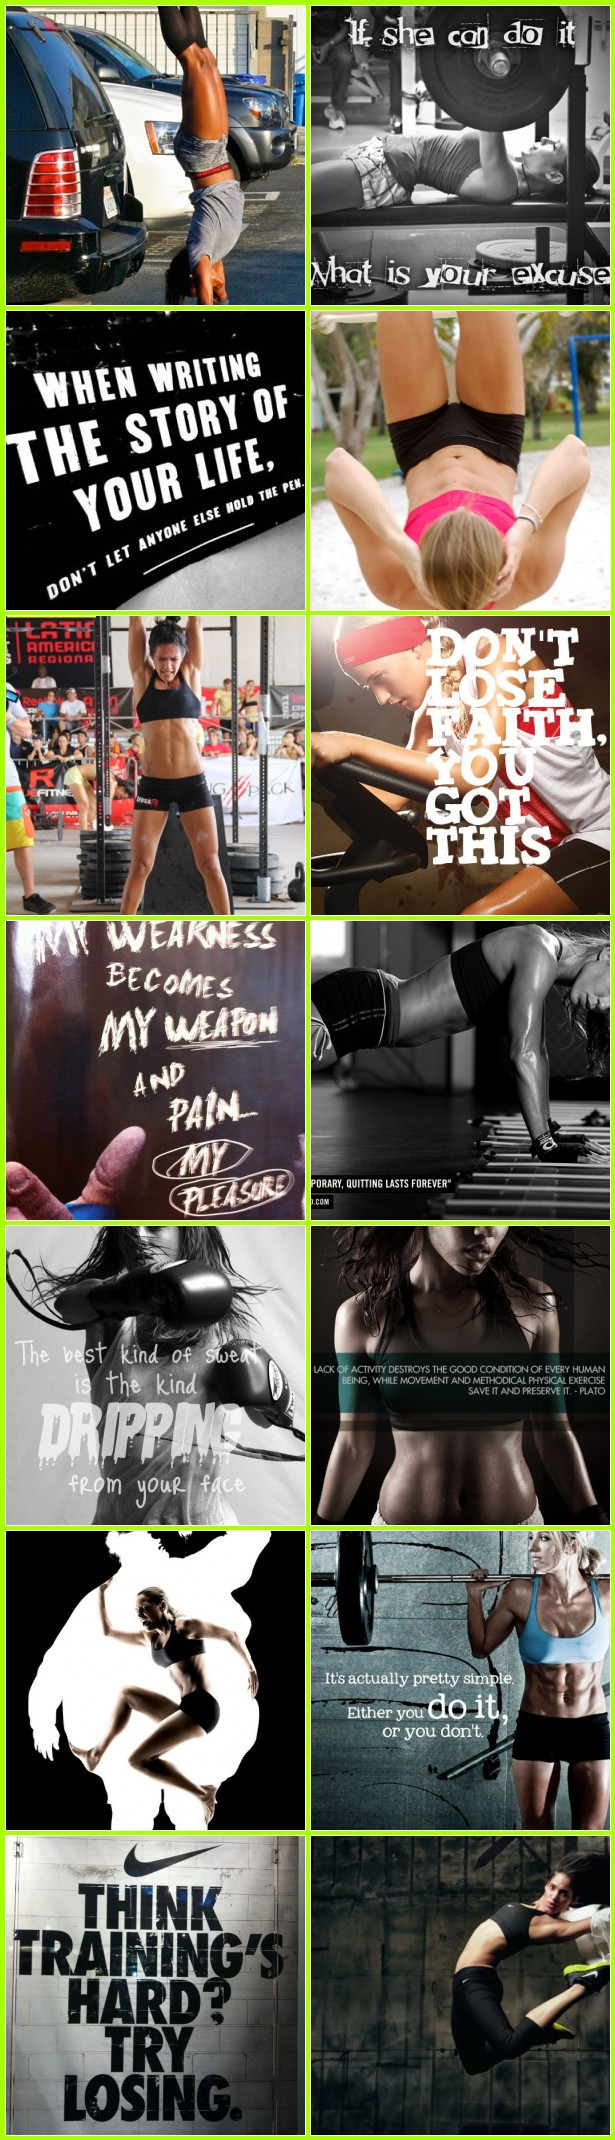 motivationpics